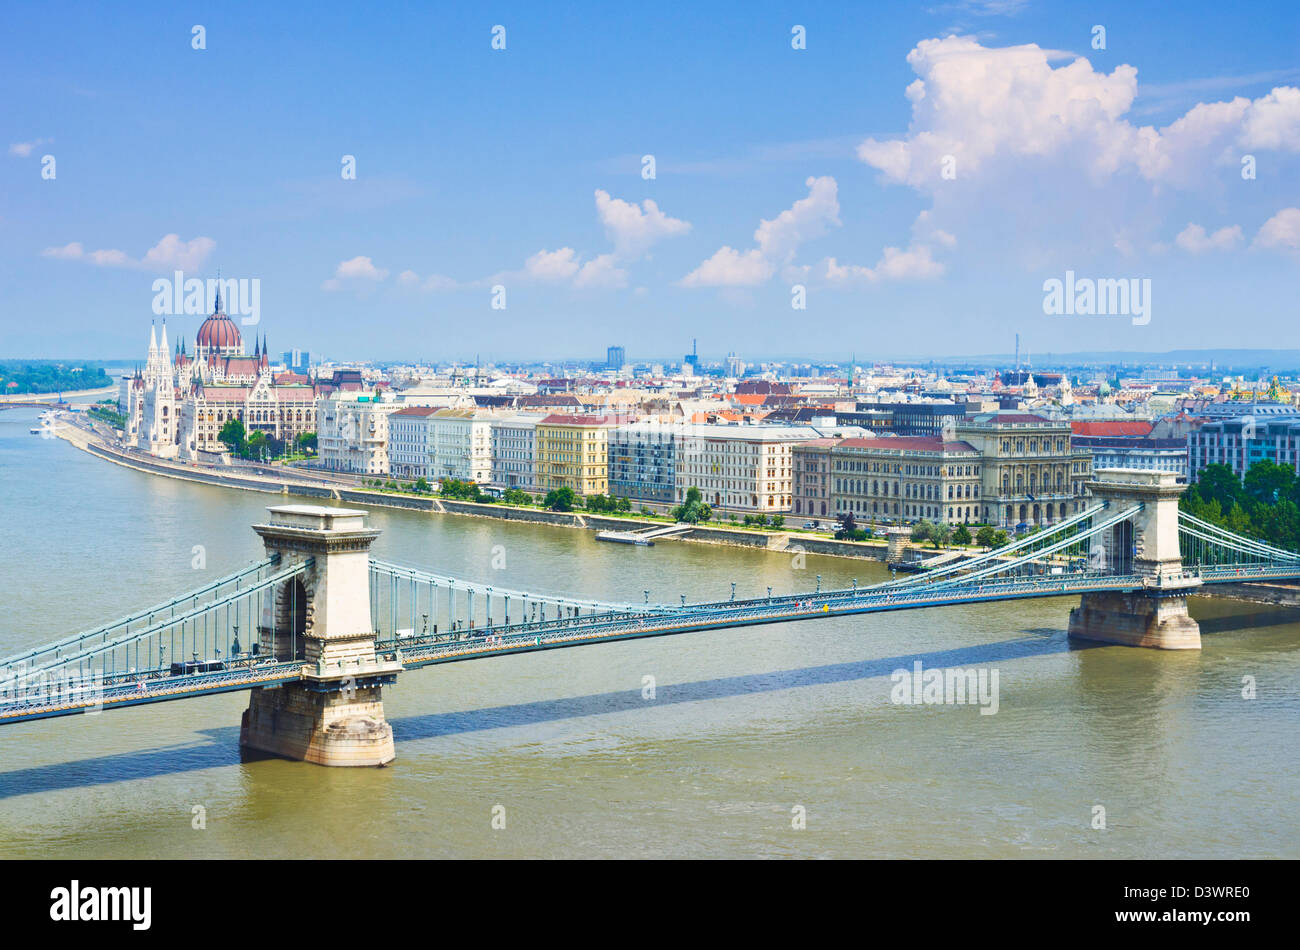 Hungarian Parliament building with the chain bridge Szechenyi Lanchid over the river Danube Budapest, Hungary eu - Stock Image